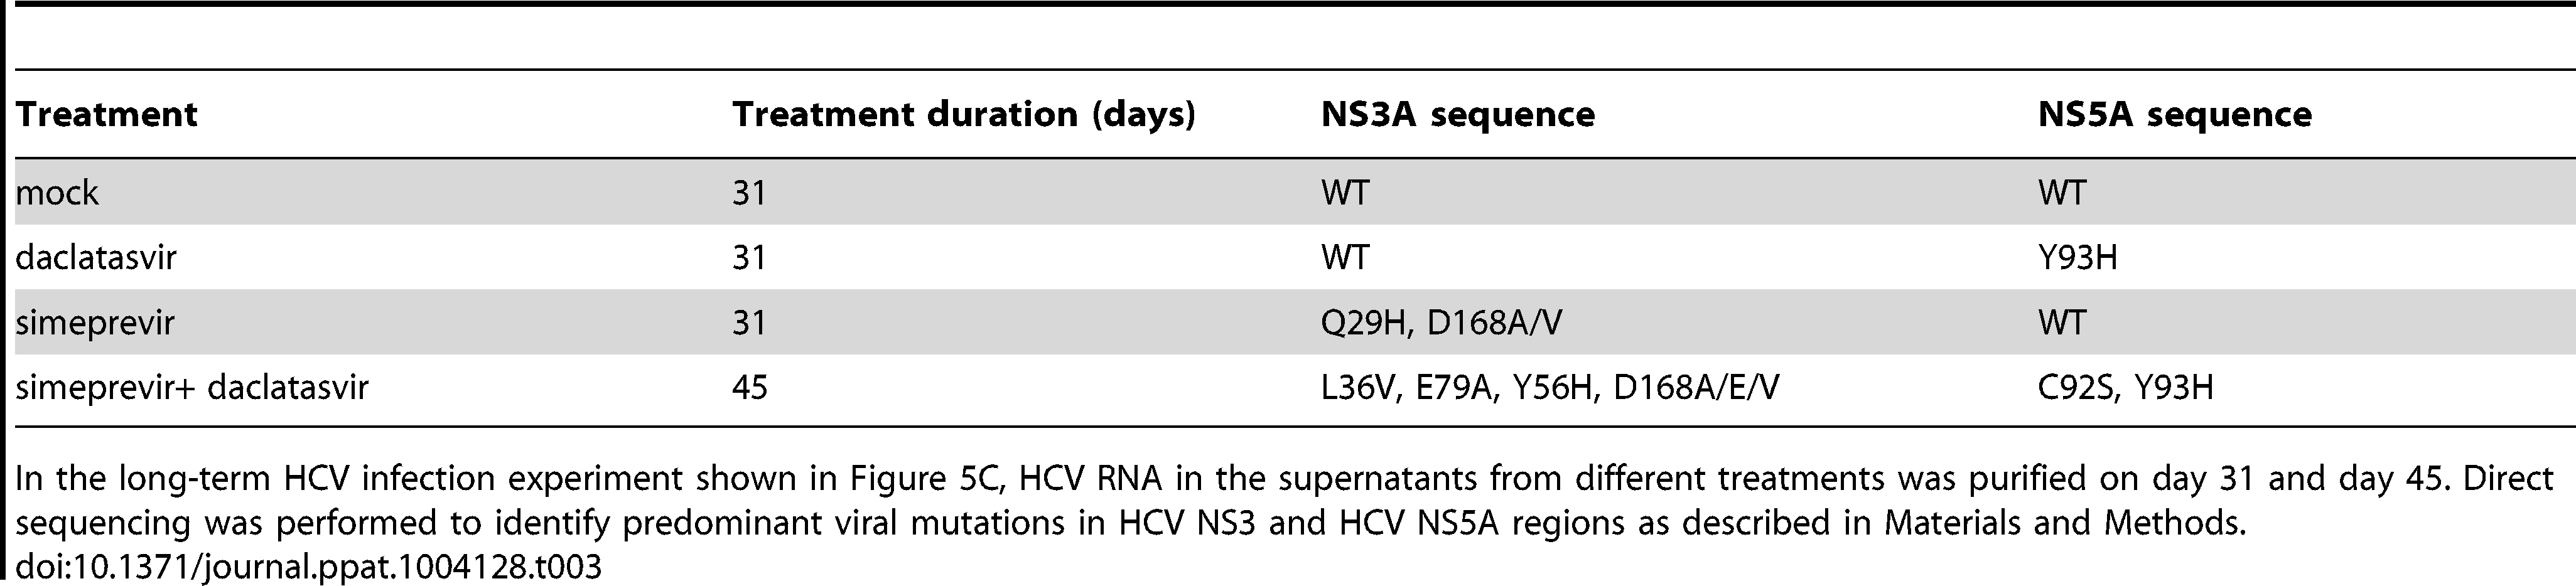 Analysis of NS3A and NS5A mutations during DAA monotherapy or treatment with a combination of DAAs.